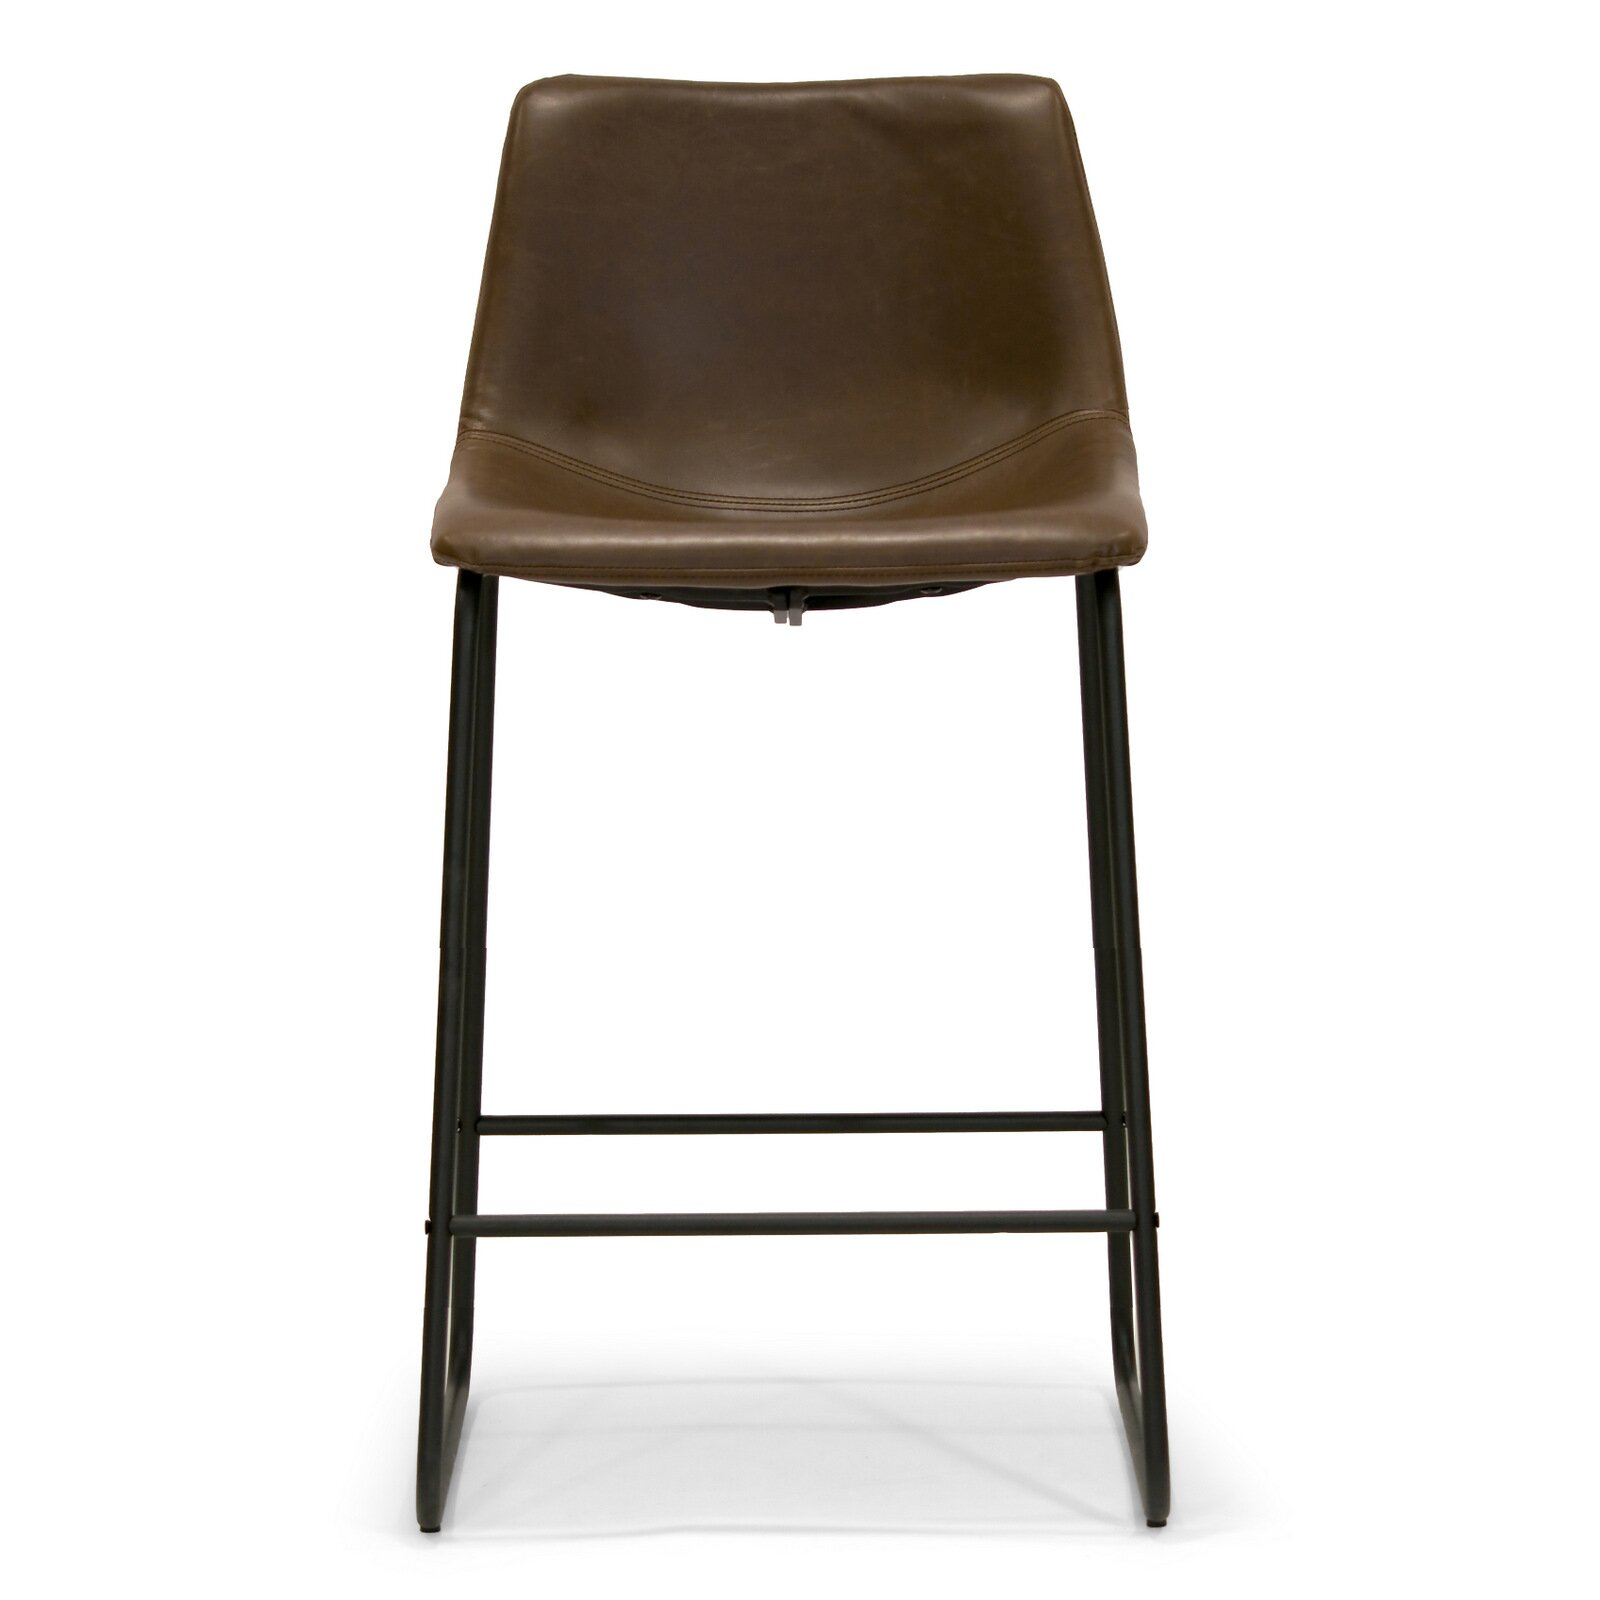 stress colored stool : Glamour Home Decor Adan 23 5 Quot